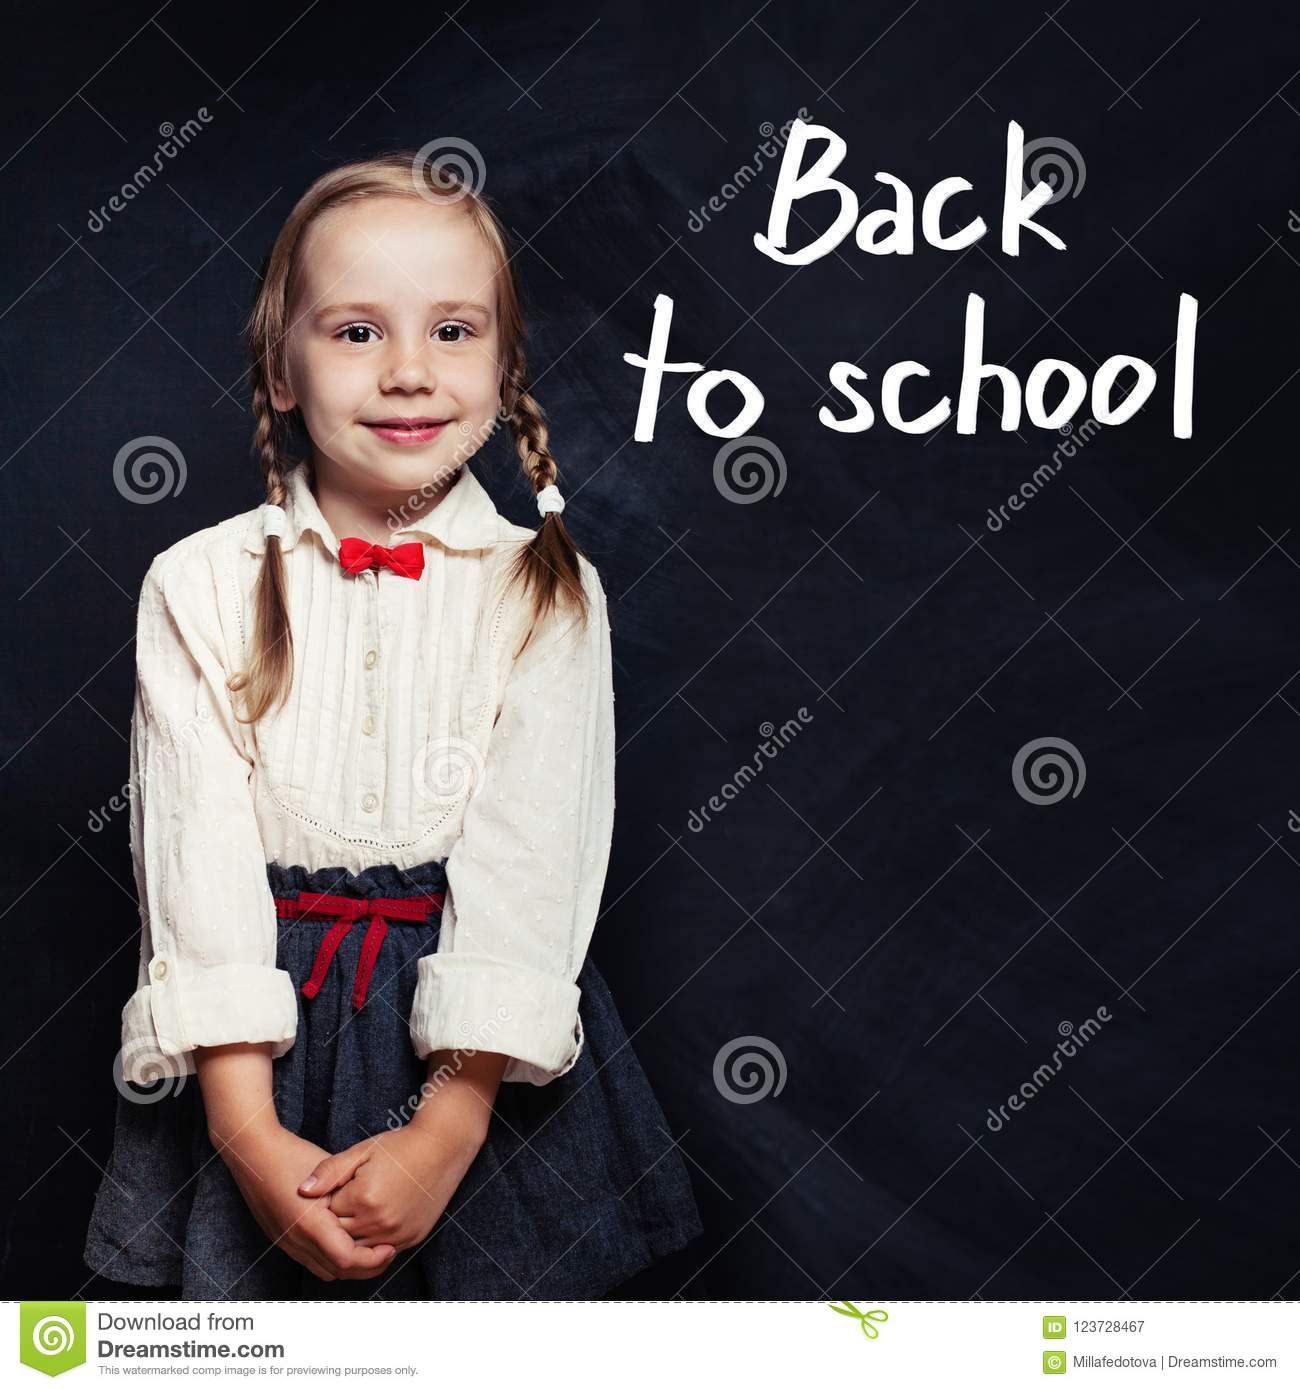 ab88f6bfc369 Cute child little girl in school uniform clothes on chalk board background.  Back to school, elementary school lesson and education concept.